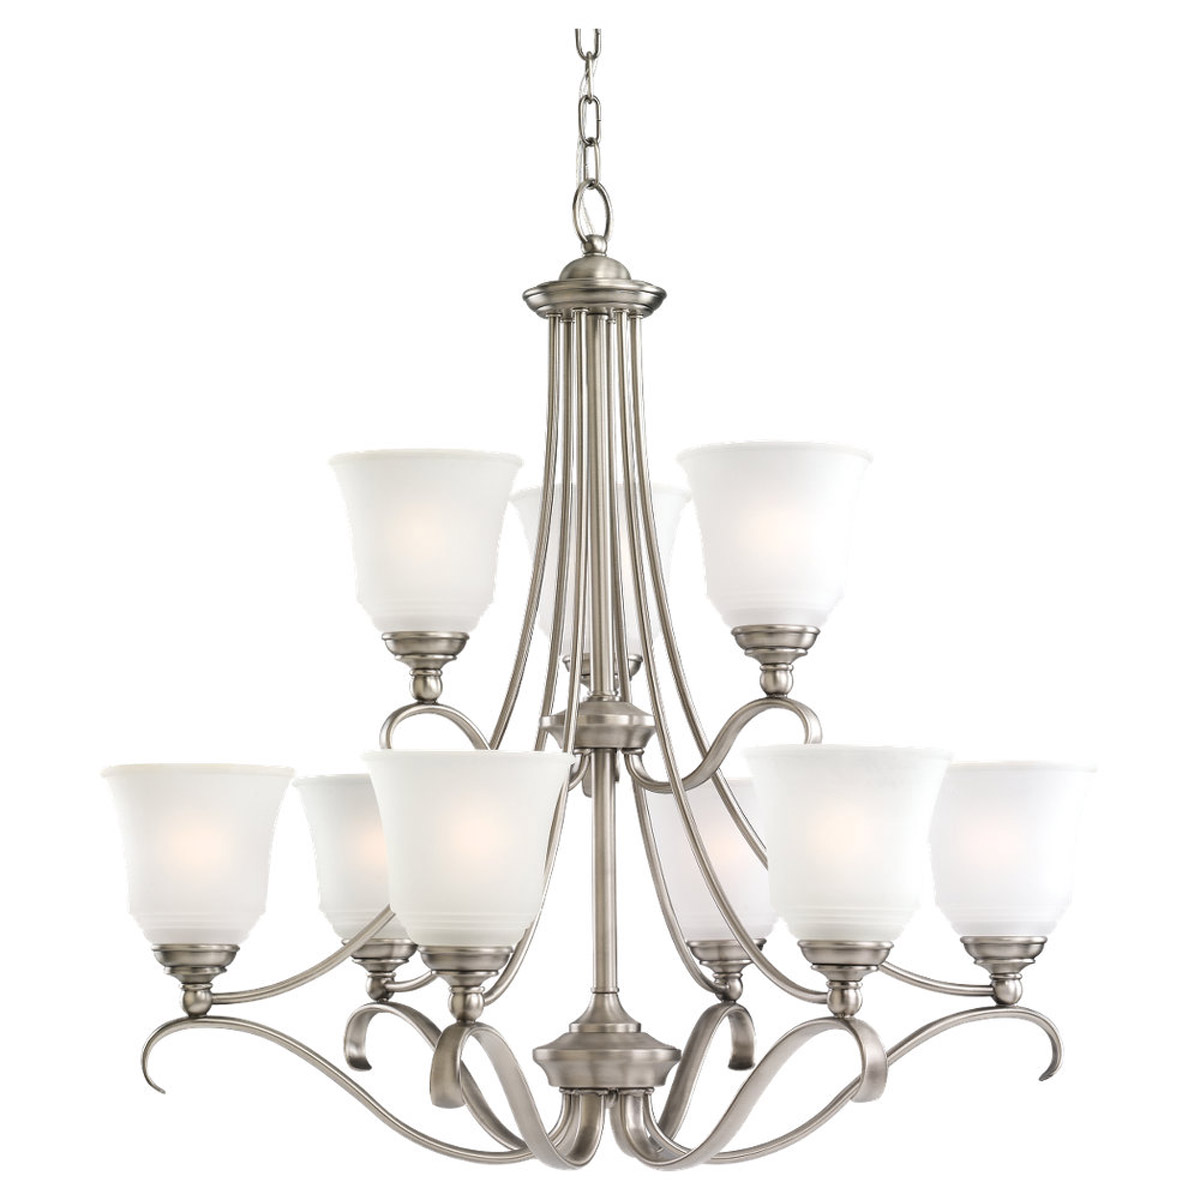 Sea Gull Lighting Parkview 9 Light Chandelier in Antique Brushed Nickel 39381BLE-965 photo